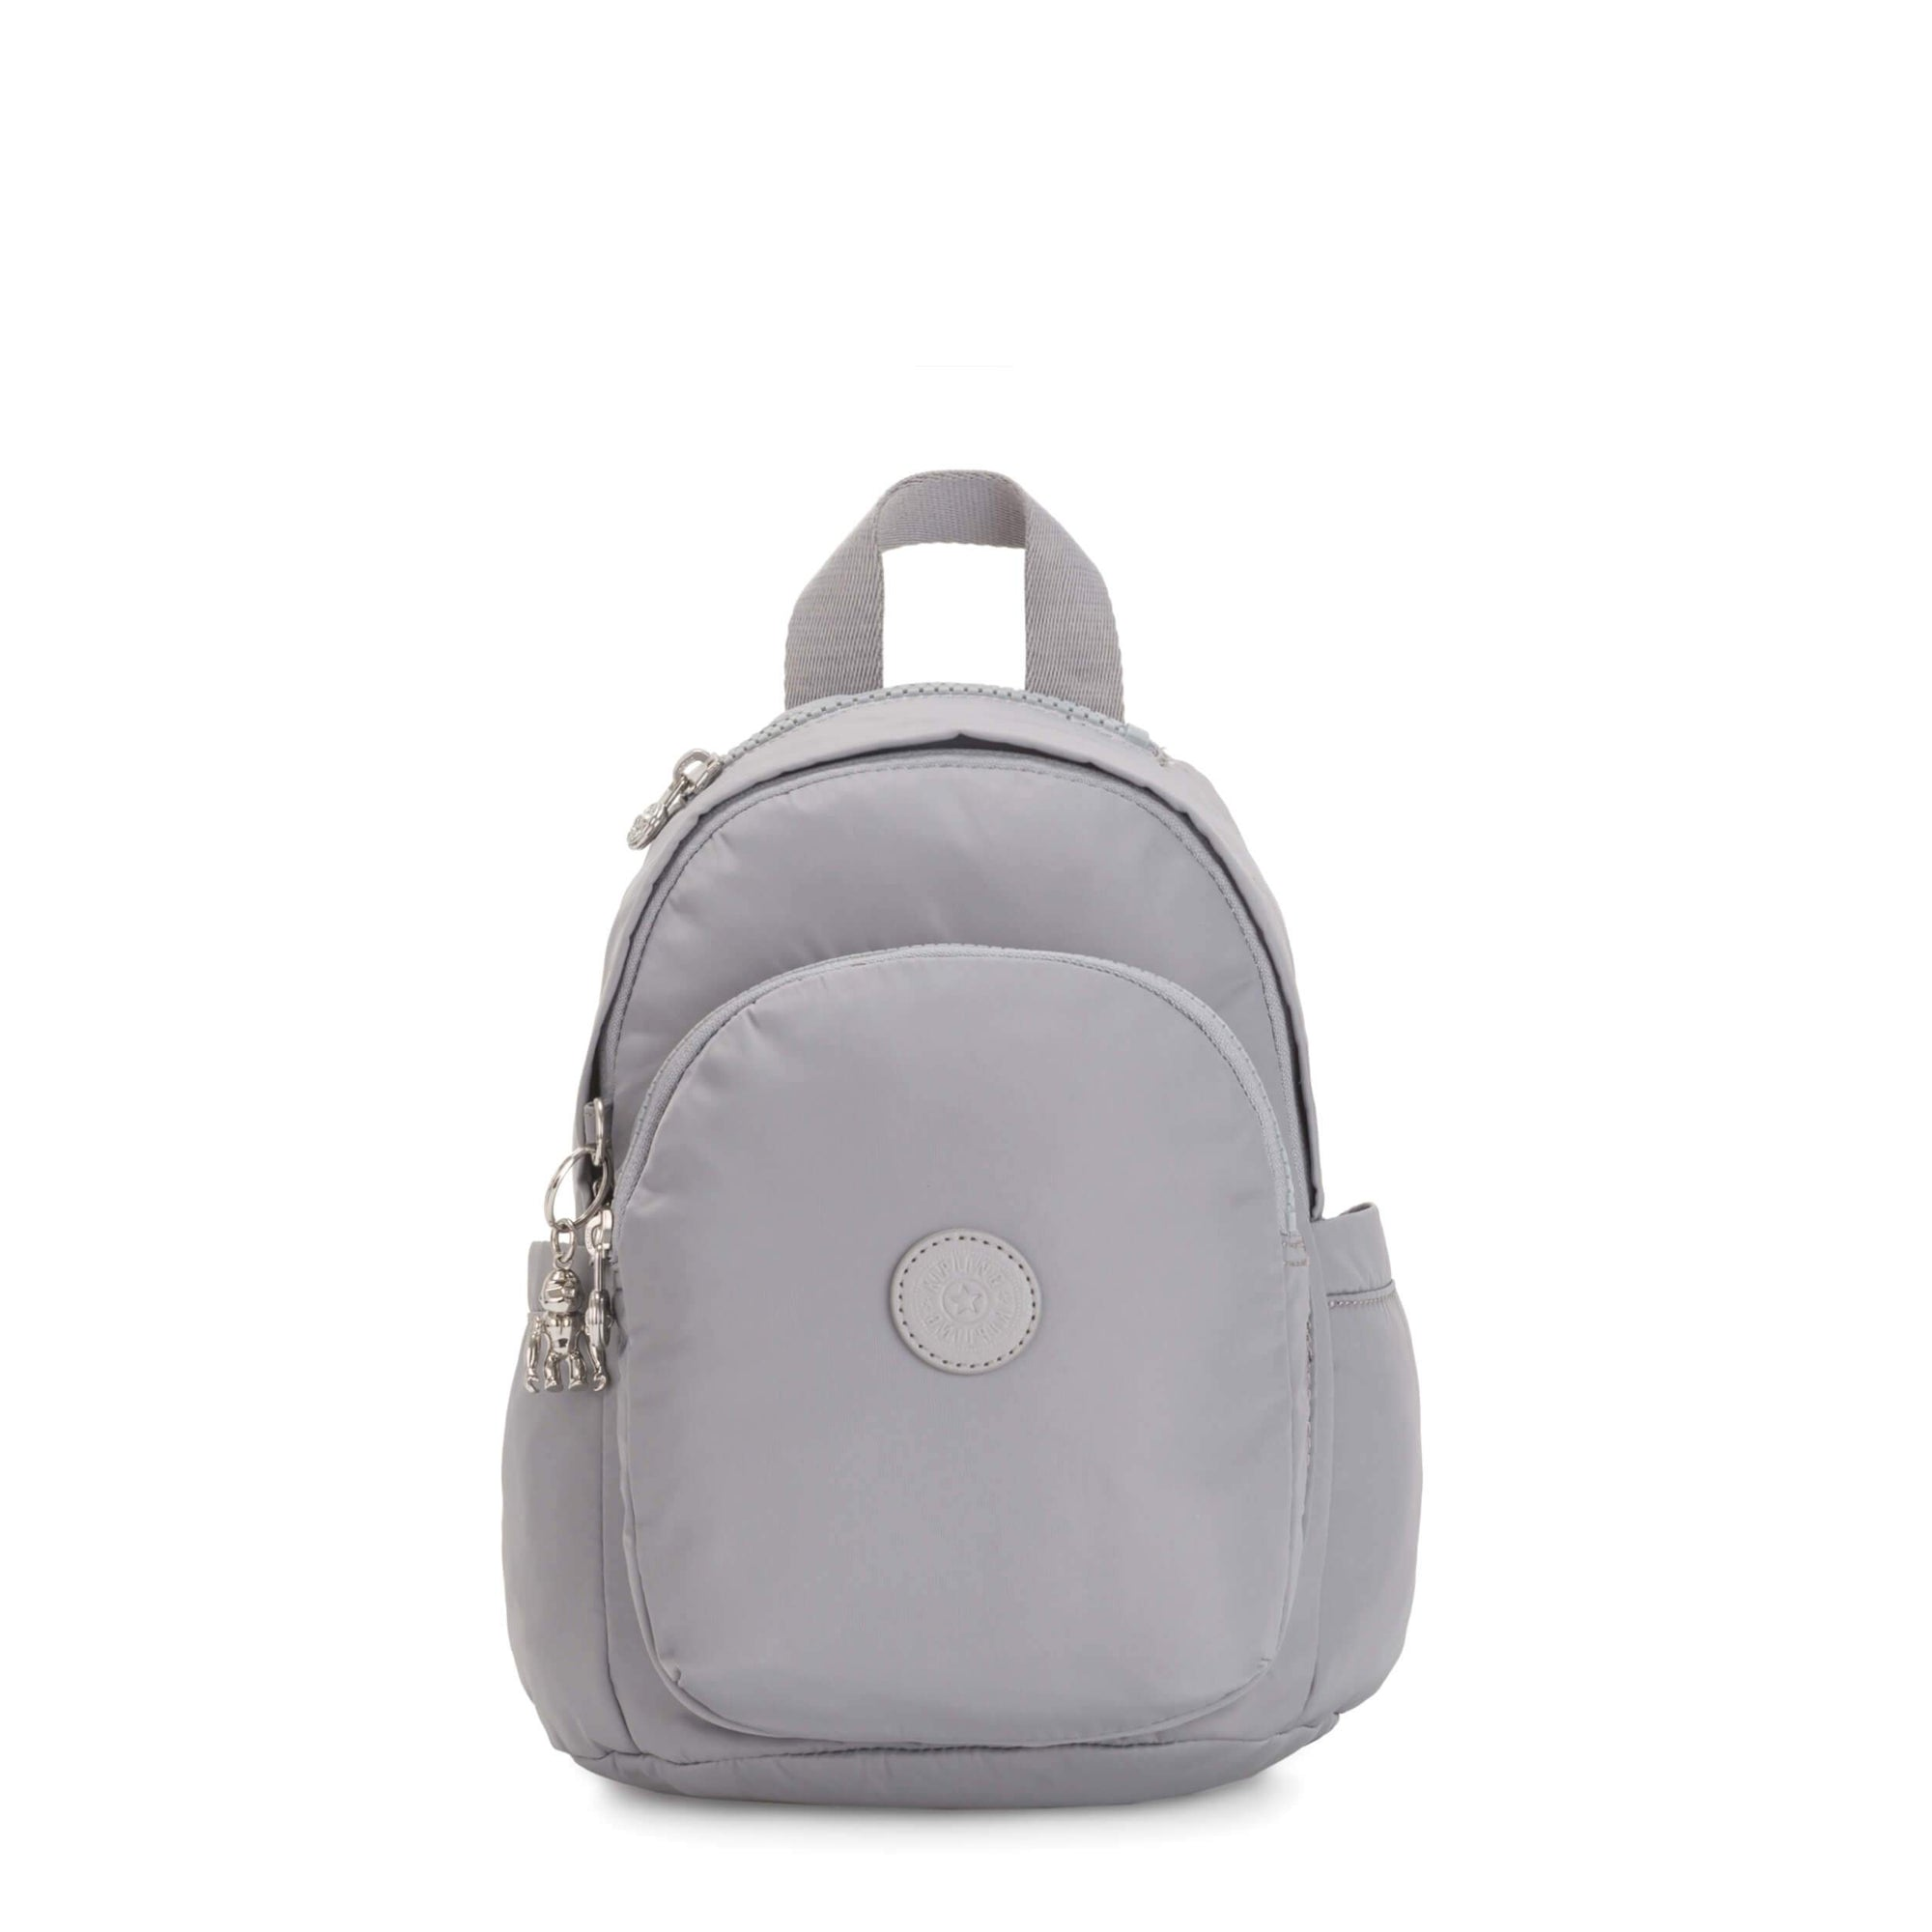 Backpack Kipling Delia Mini Natural Grey KI4586R94